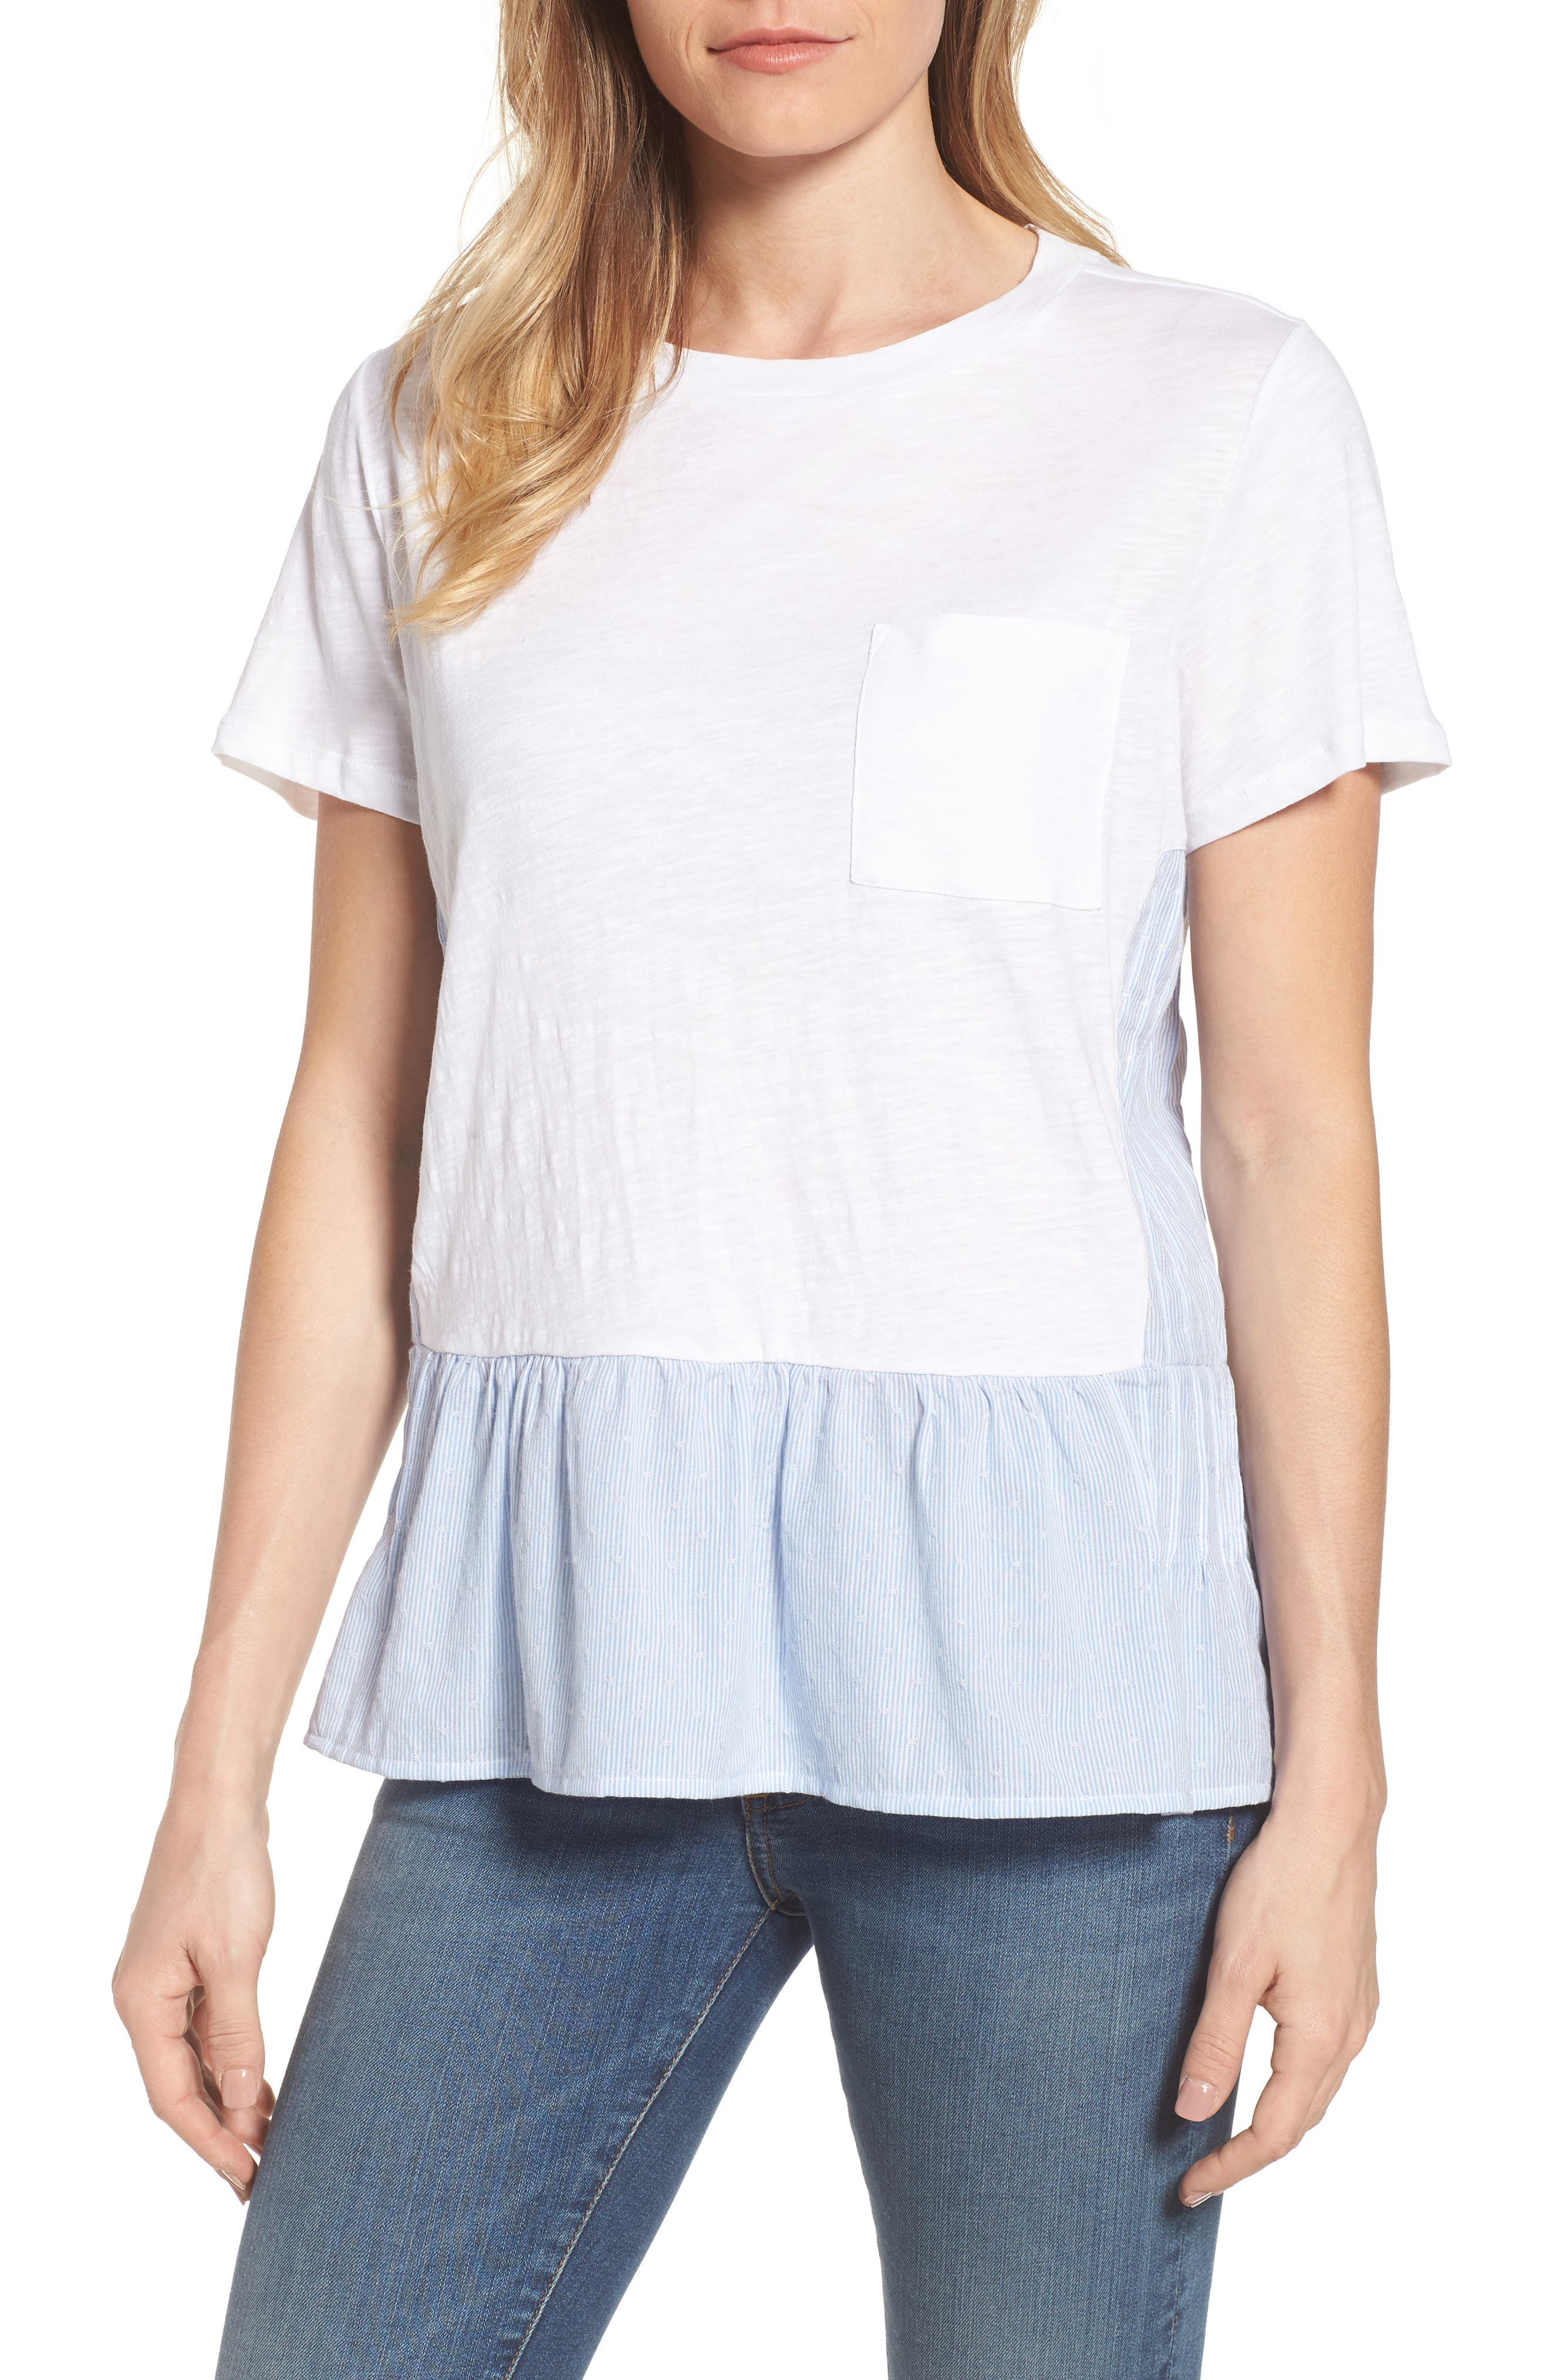 Layered Look Tee,                         Main,                         color, White- Blue White Dobby Stripe